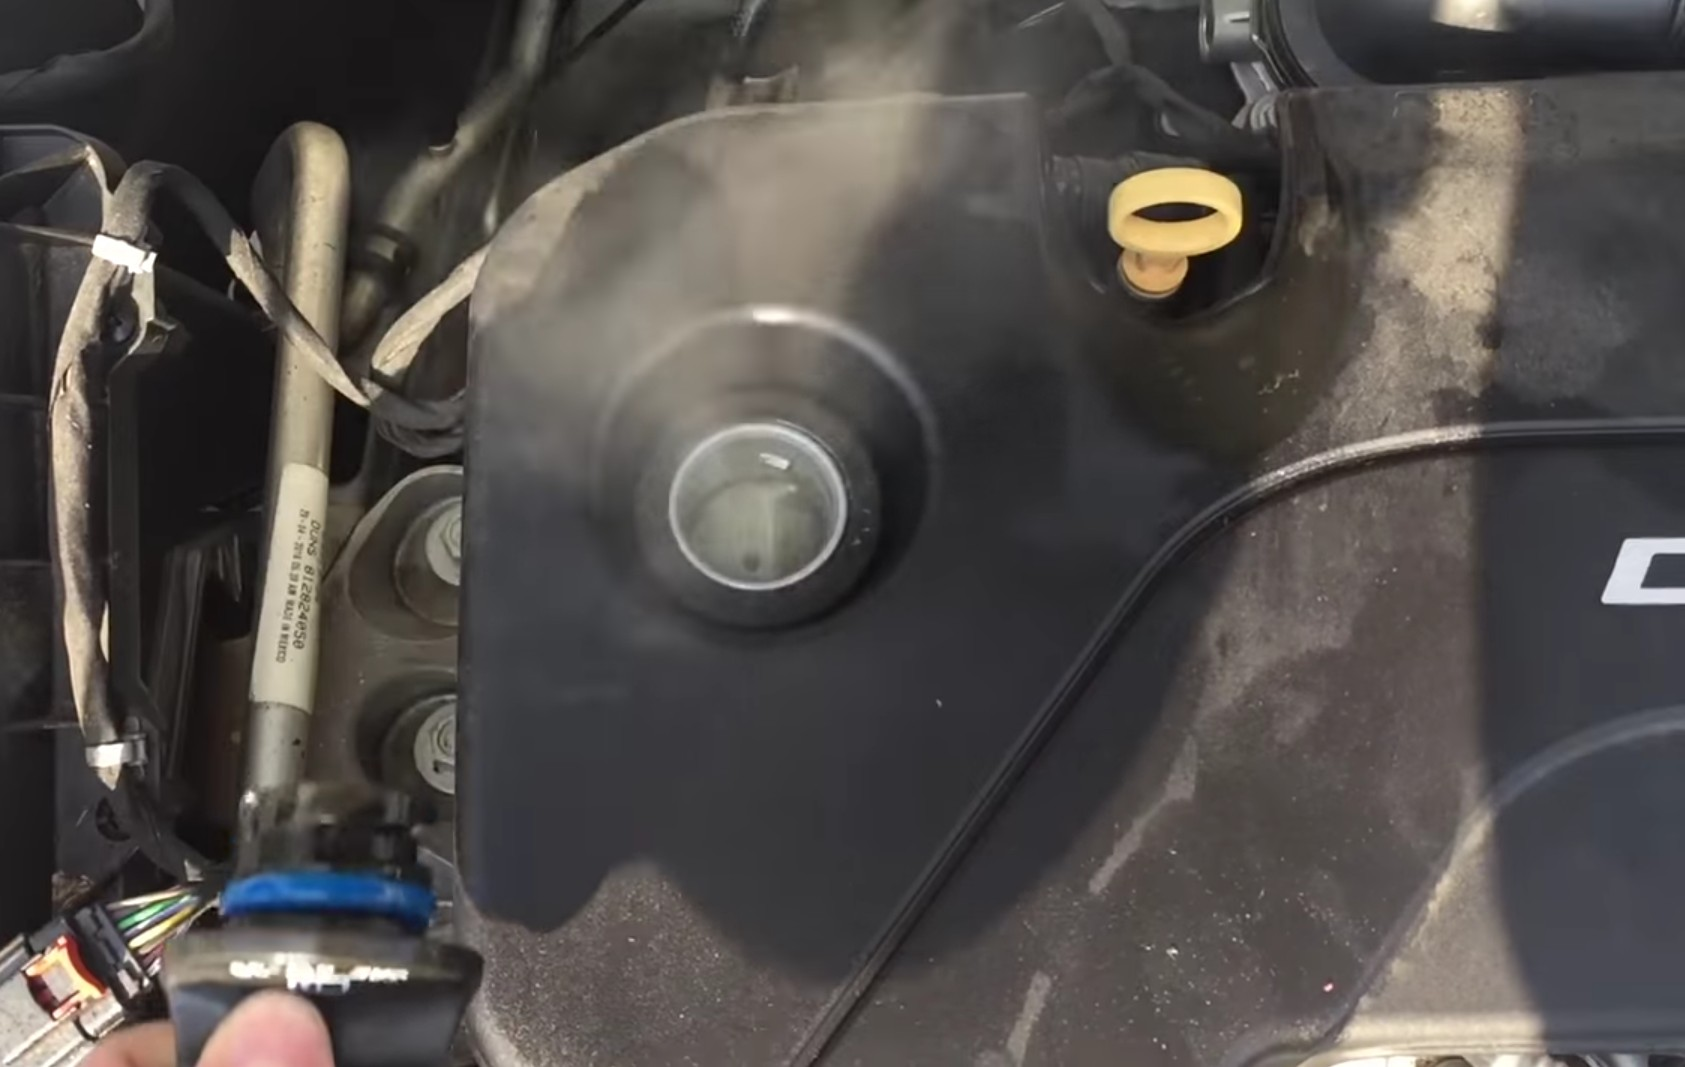 What engine blow-by looks like